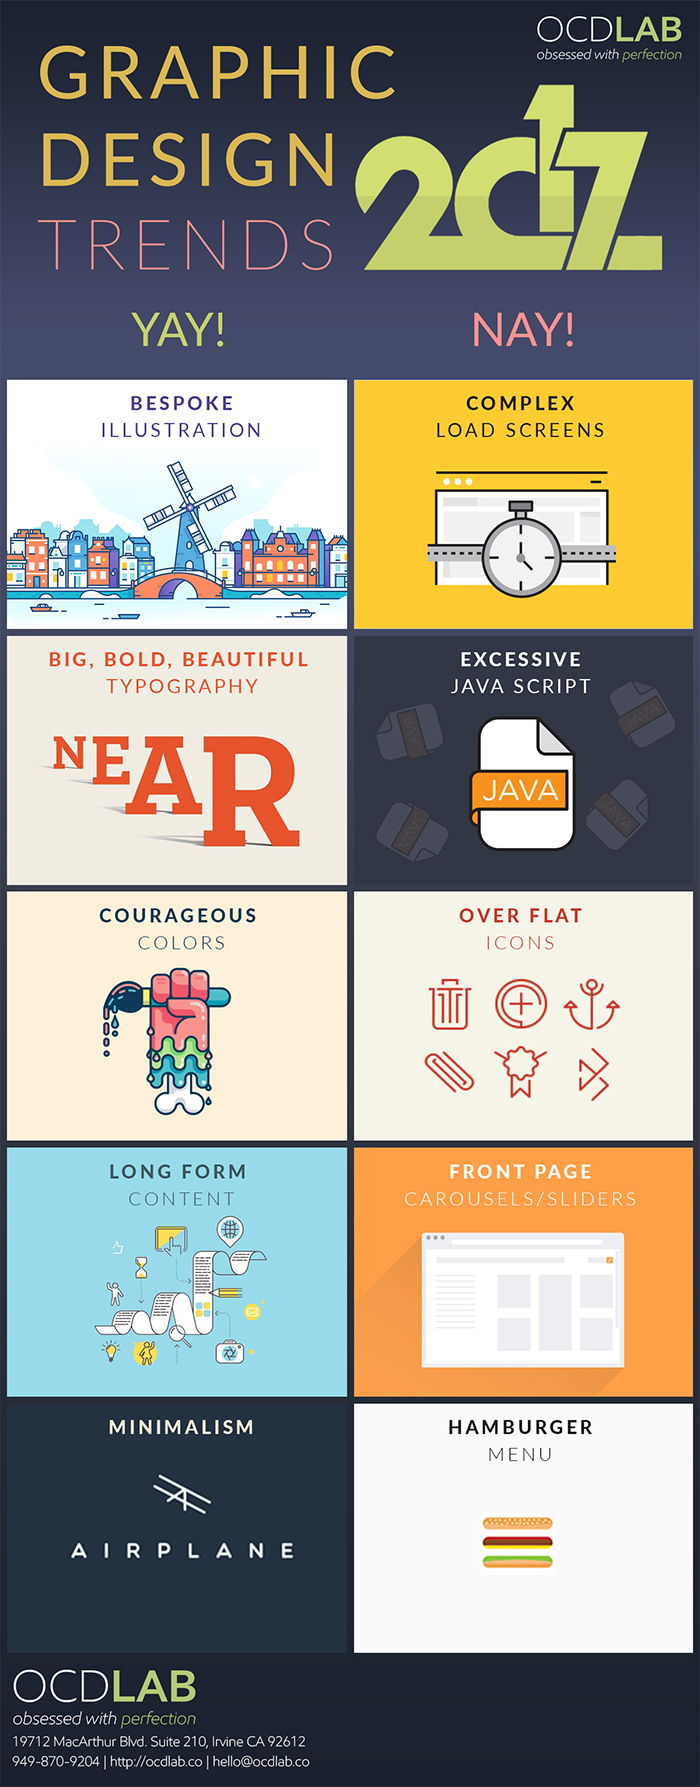 infographic design trends 2017